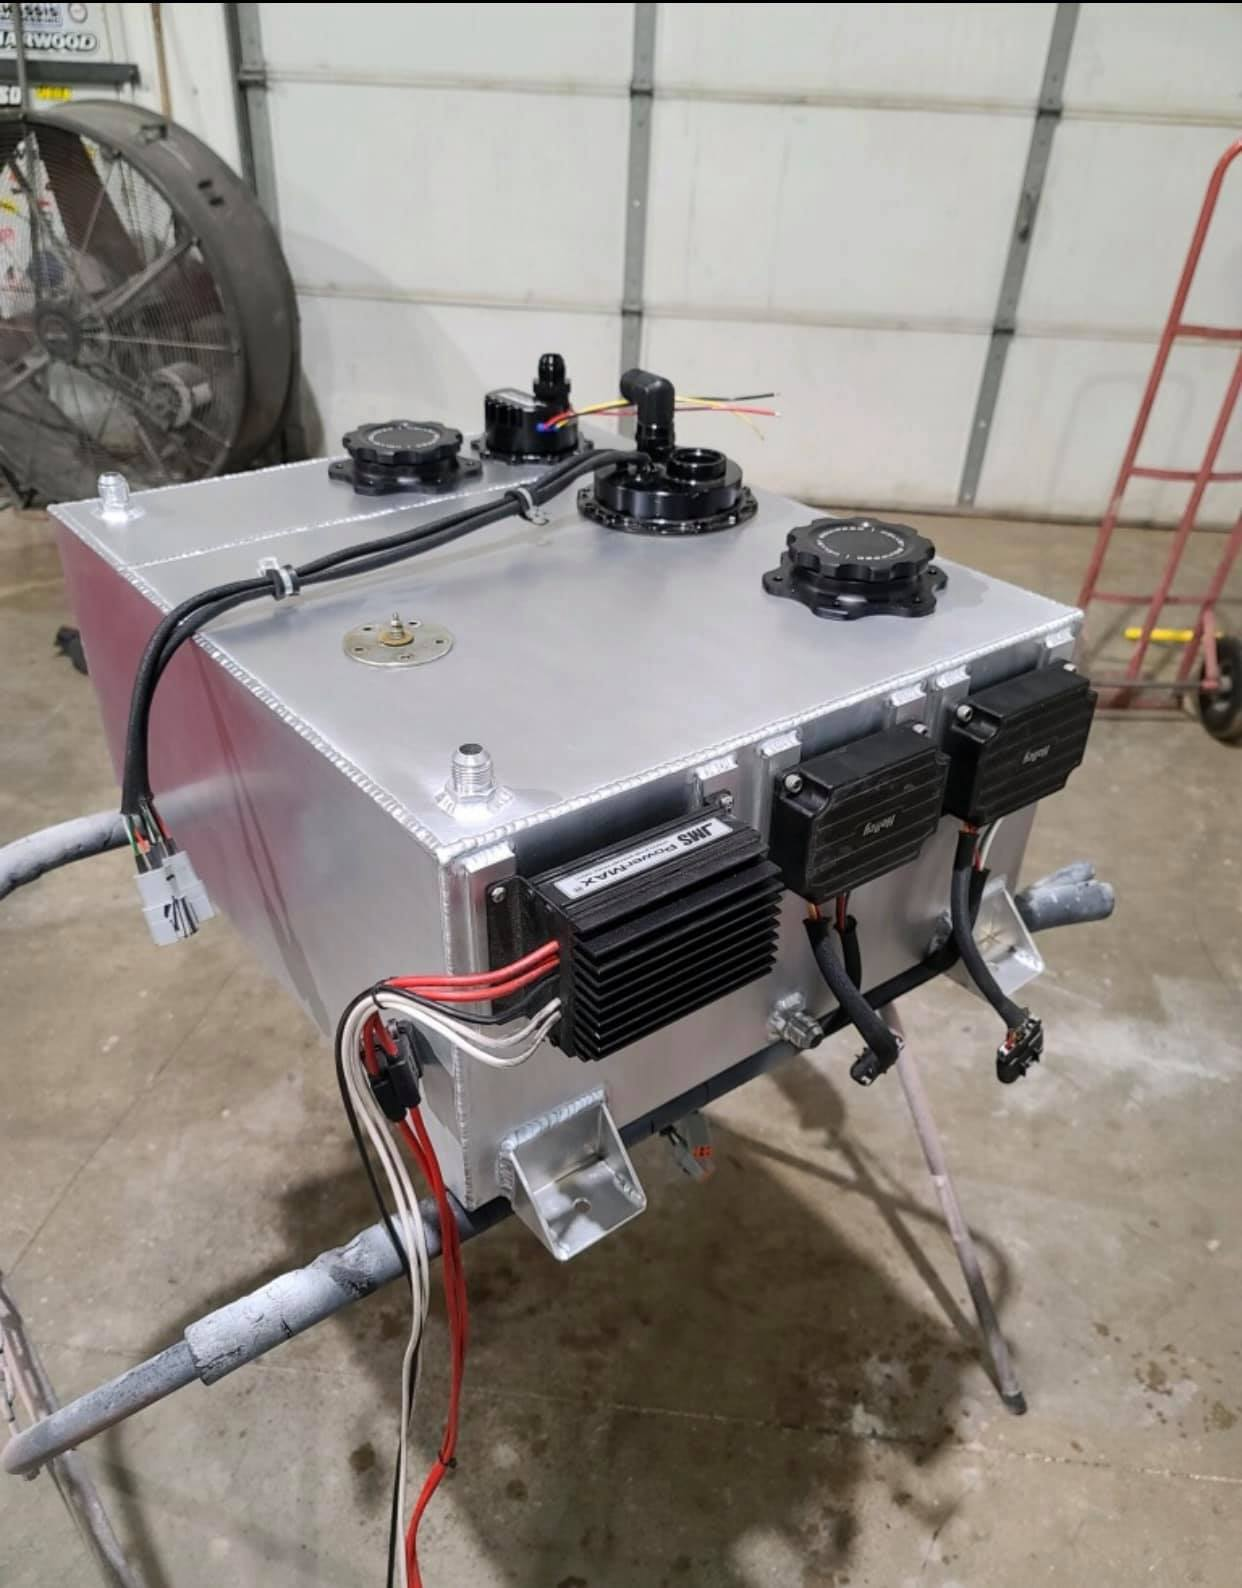 Fabrication Spotlight: Dennis Taylor Knows How To Get Down With Some Dual Fuel Tanks